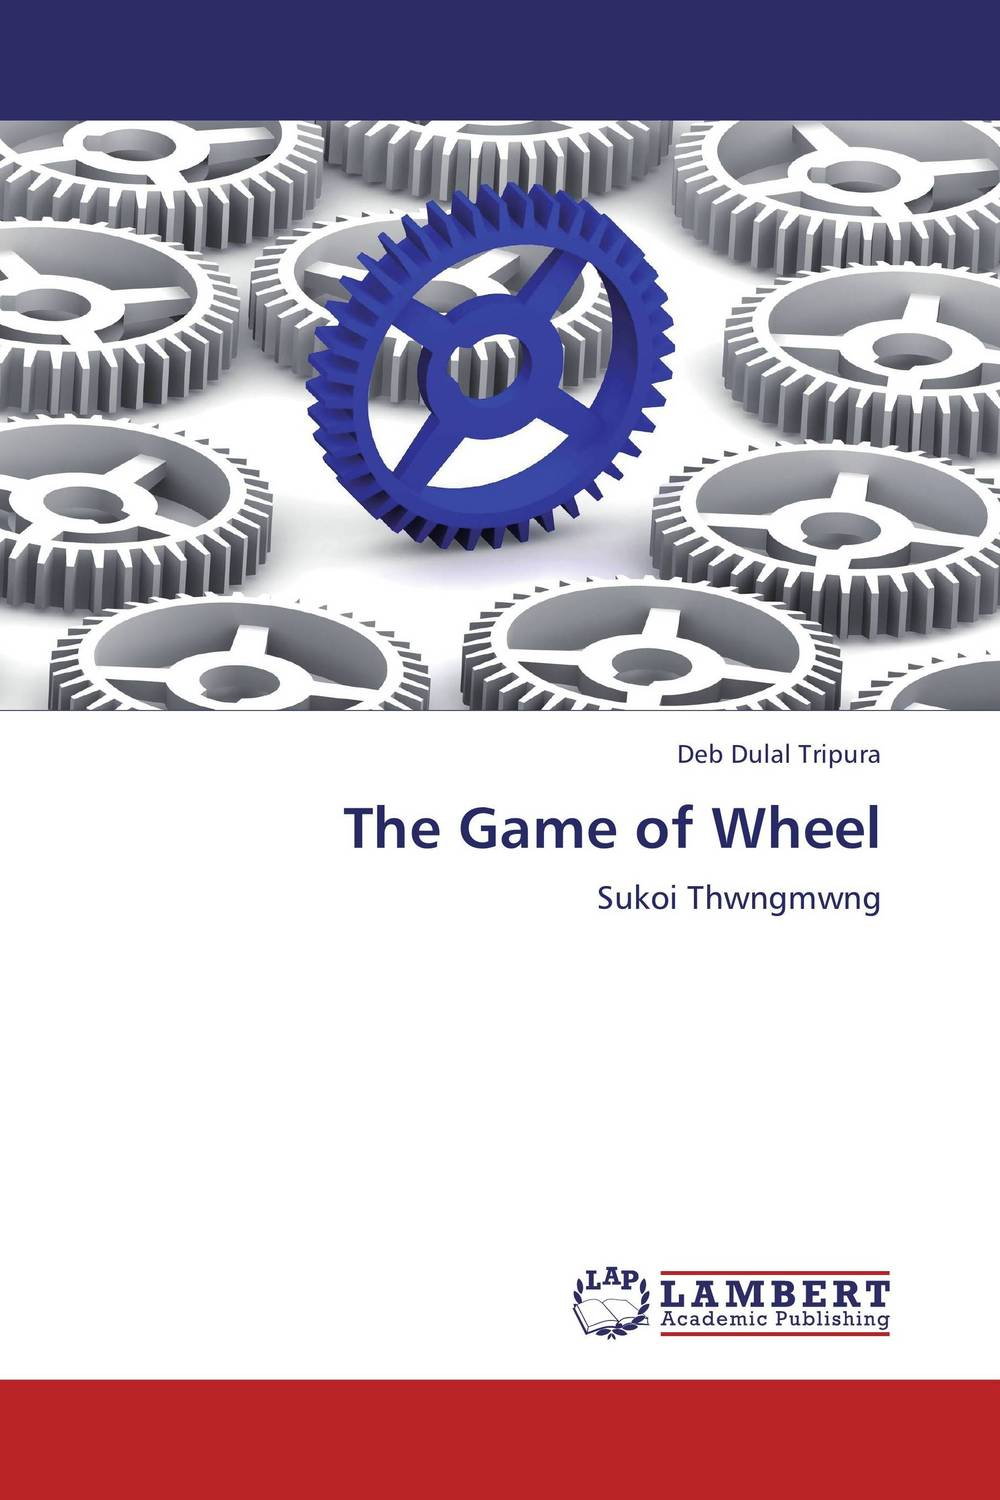 The Game of Wheel